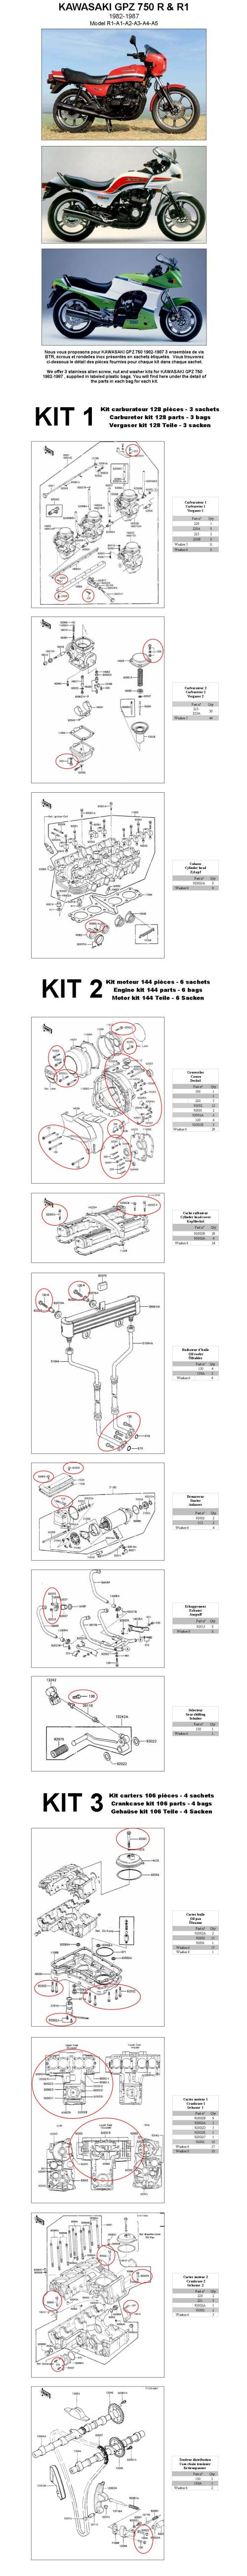 small resolution of 82 gpz750 wiring diagram